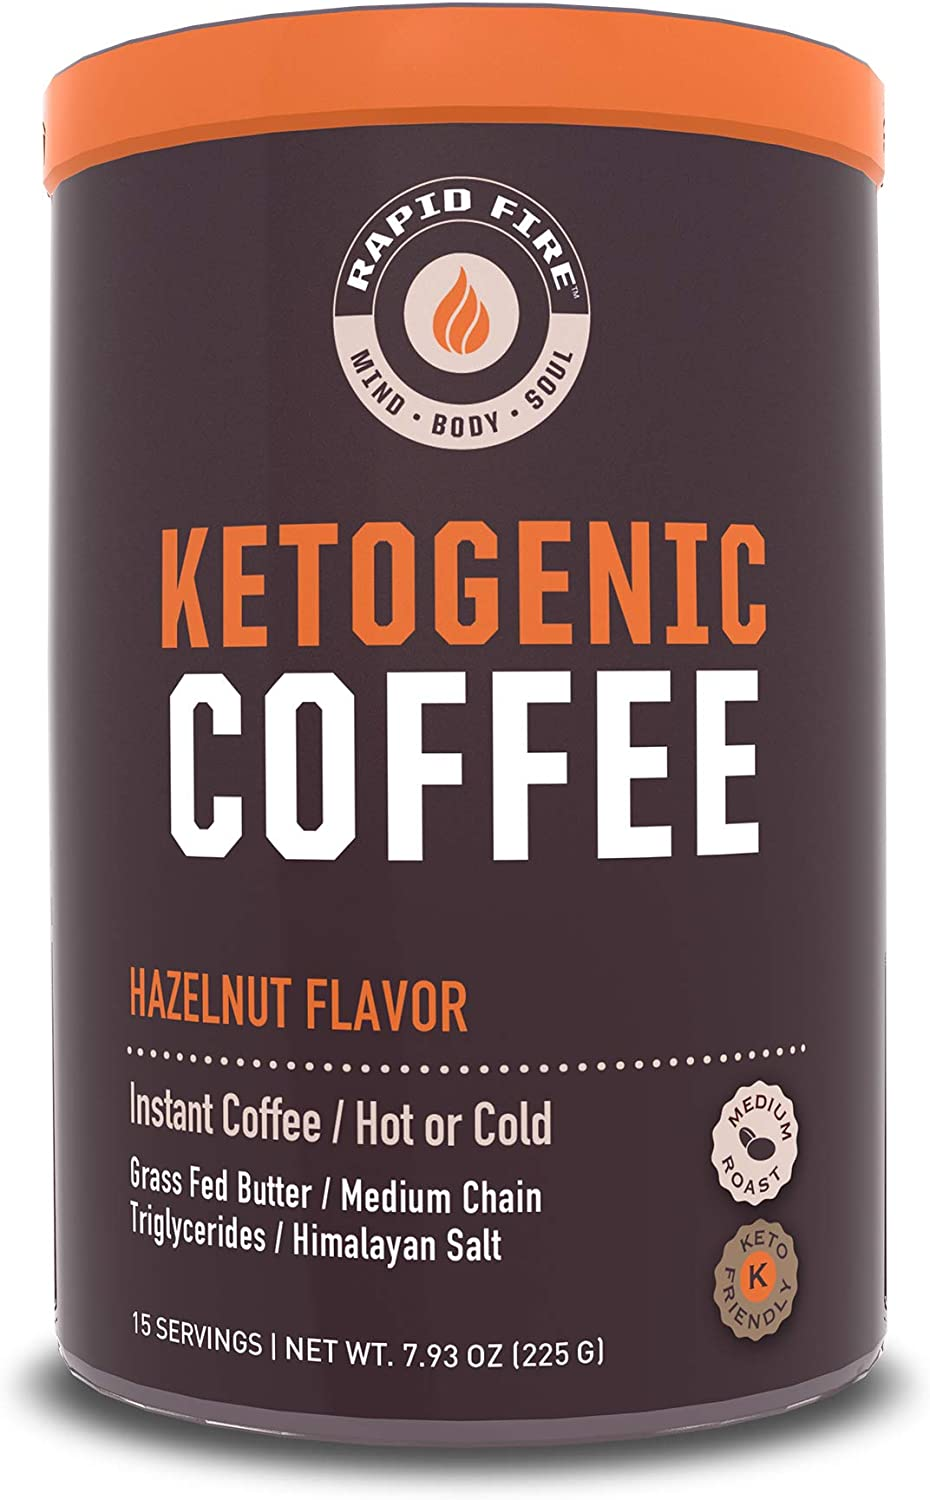 Rapid Fire Hazelnut Ketogenic Coffee, Supports Energy, Metabolism and Weight Loss, 7.93 oz. (15 Servings)